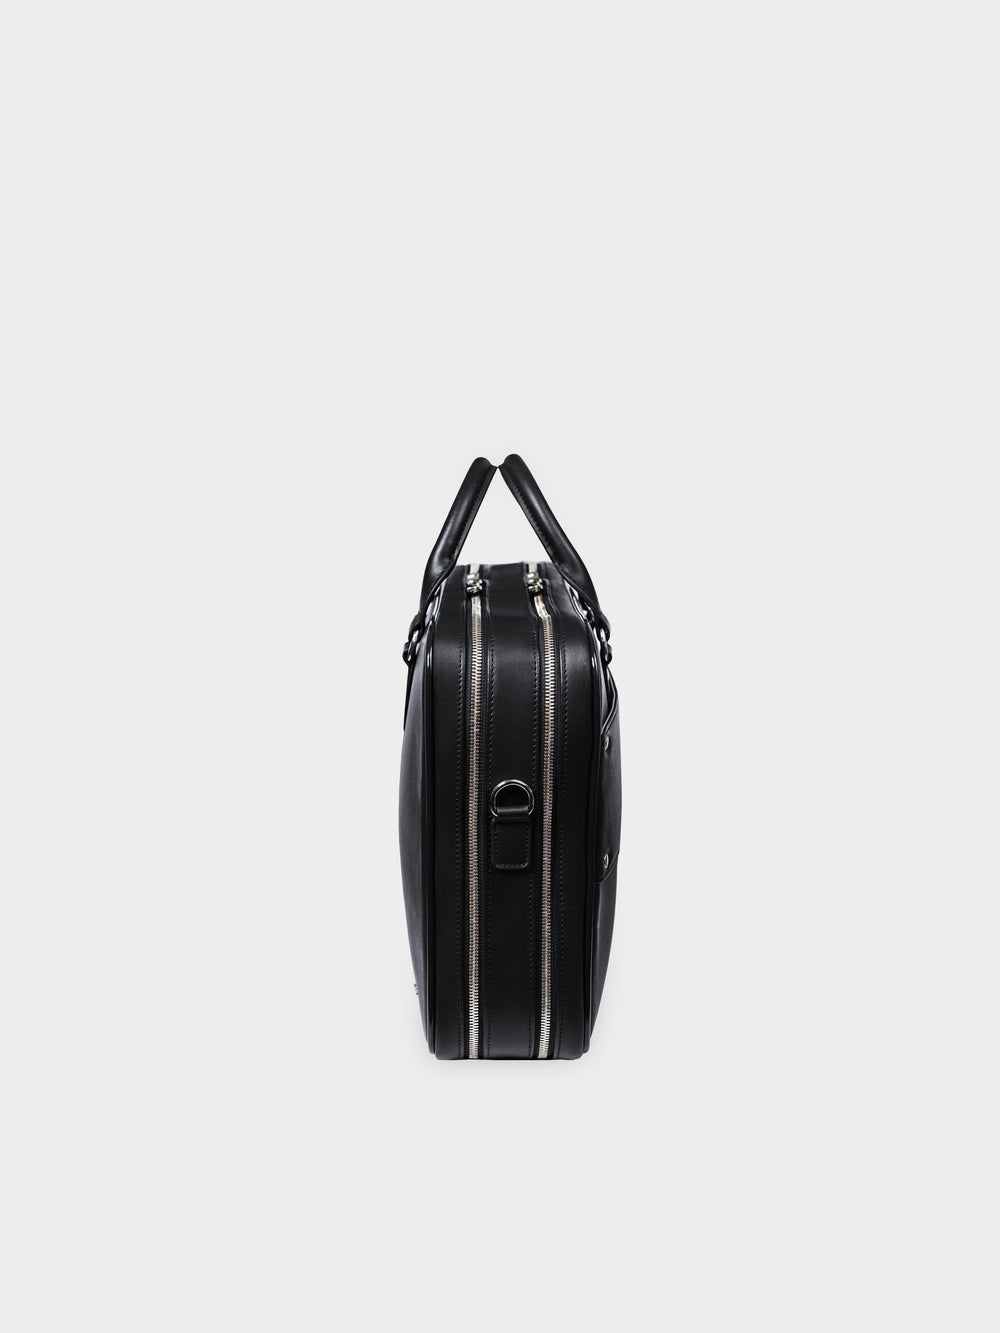 f26 black leather briefcase